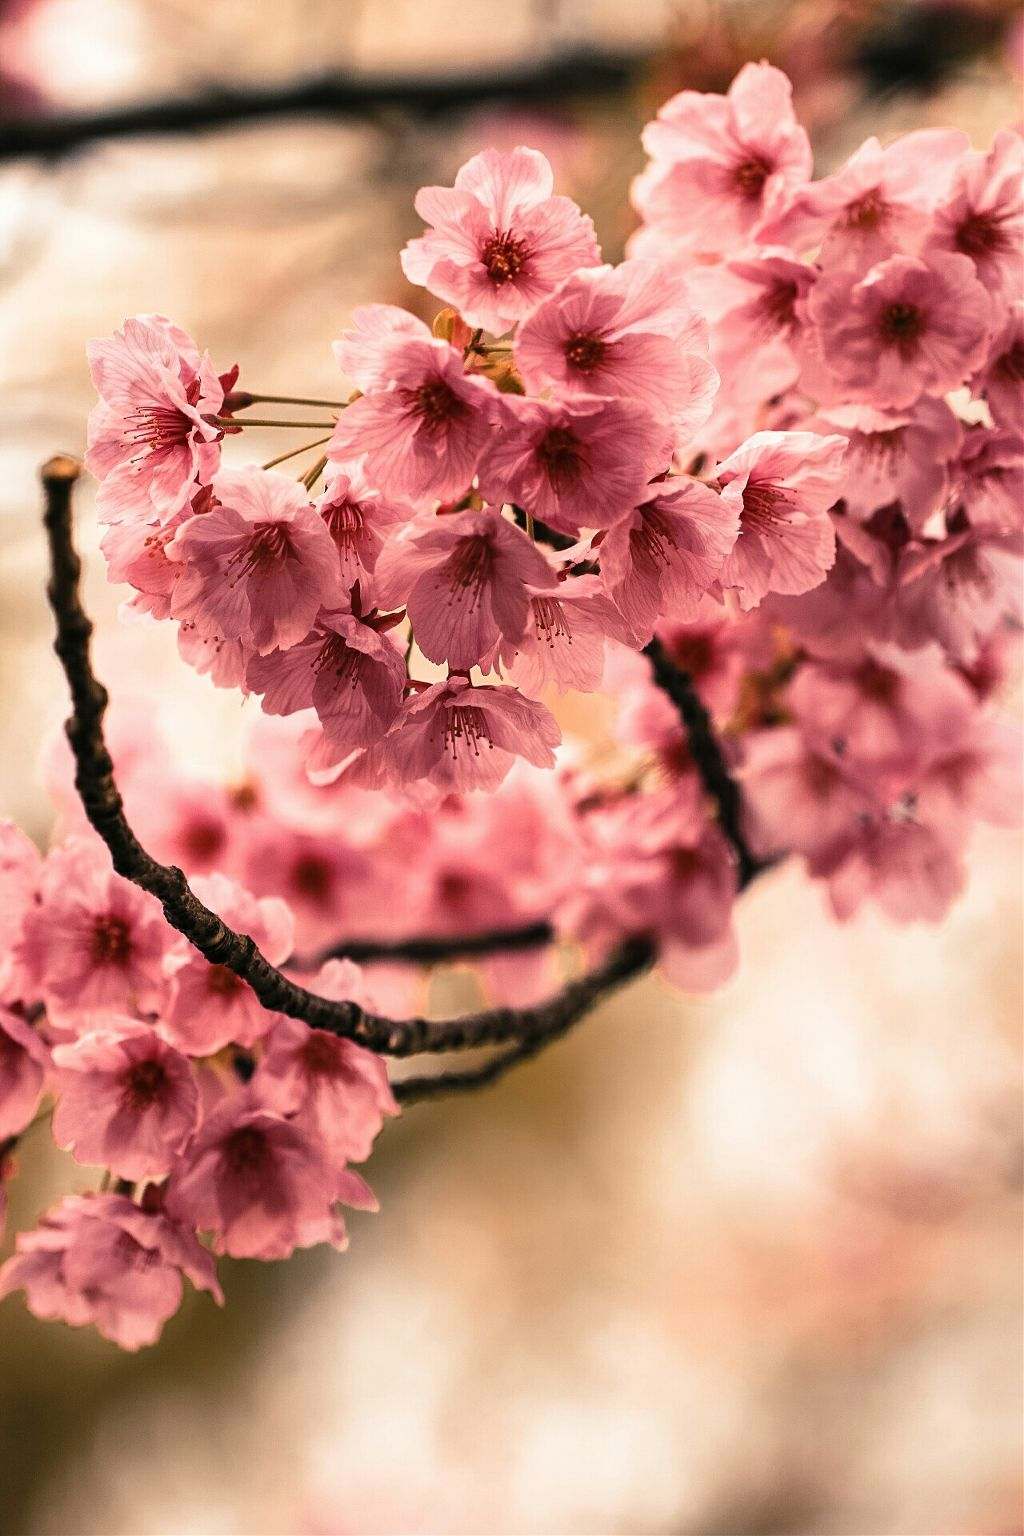 Bokeh Colorful Cute Cherryblossom Beautiful Flower Spr